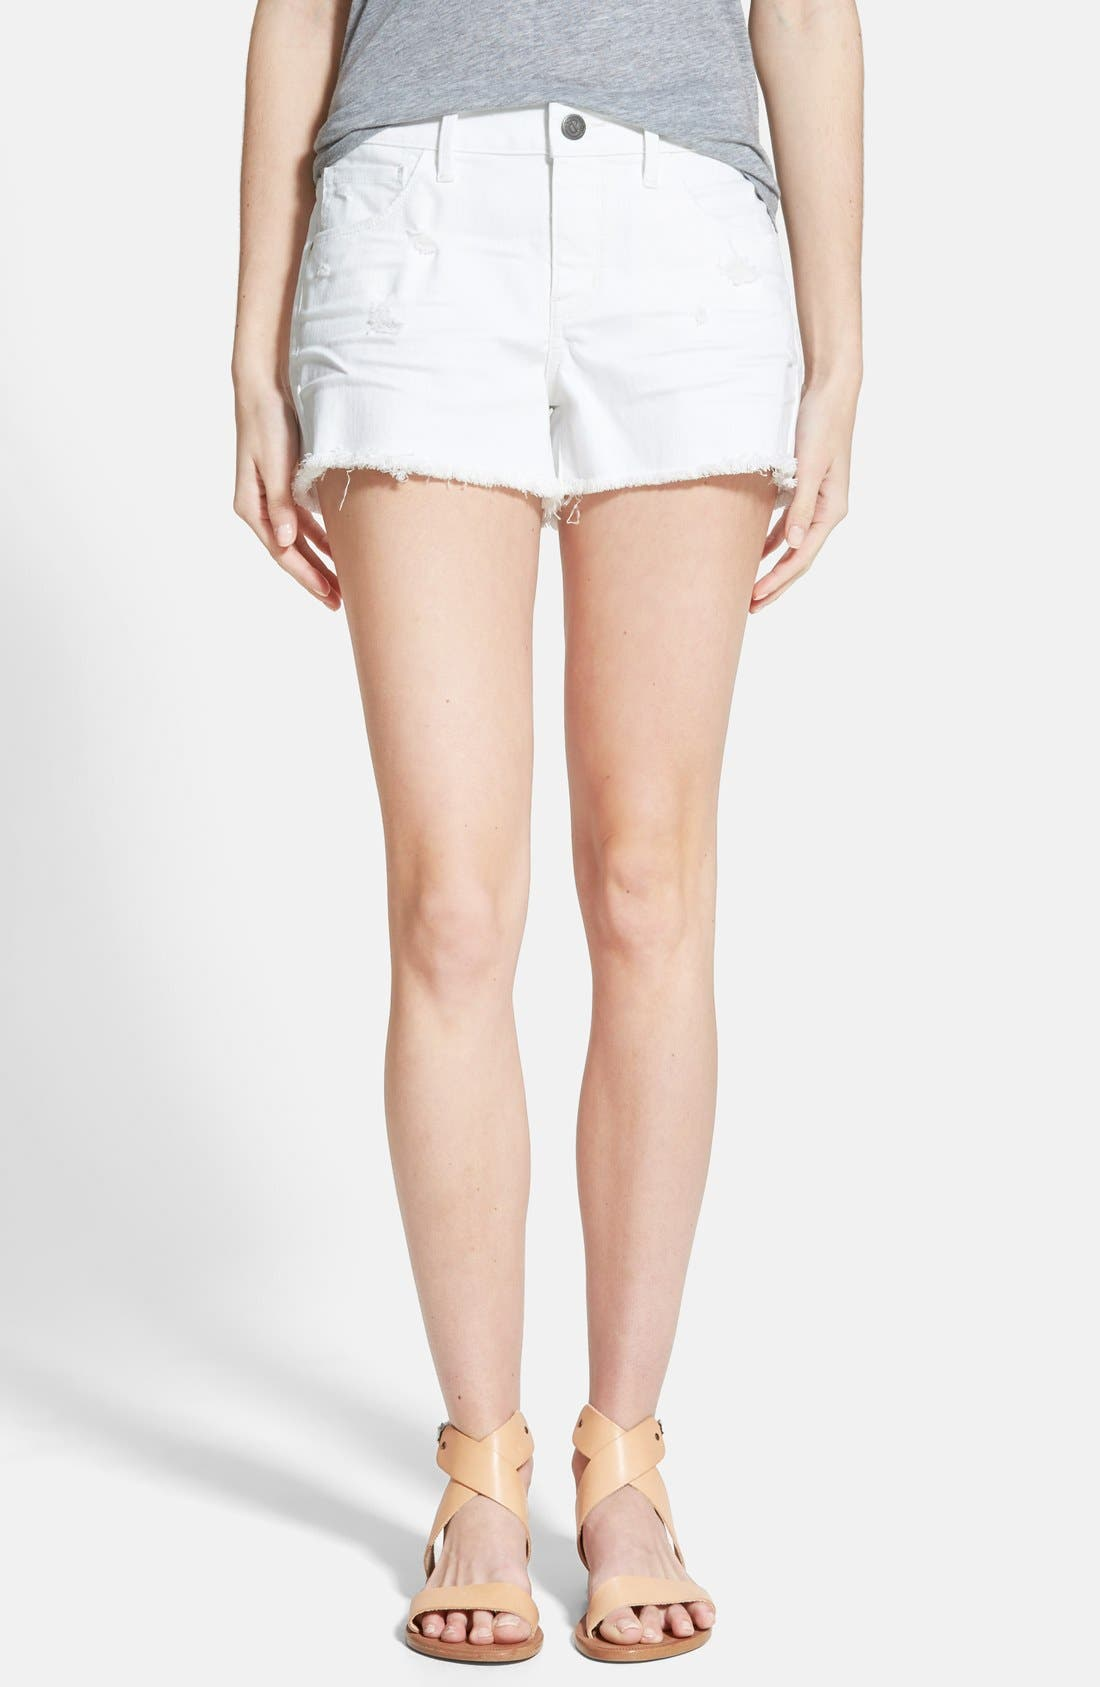 Alternate Image 1 Selected - Treasure&Bond Cutoff Shorts (White Worn)